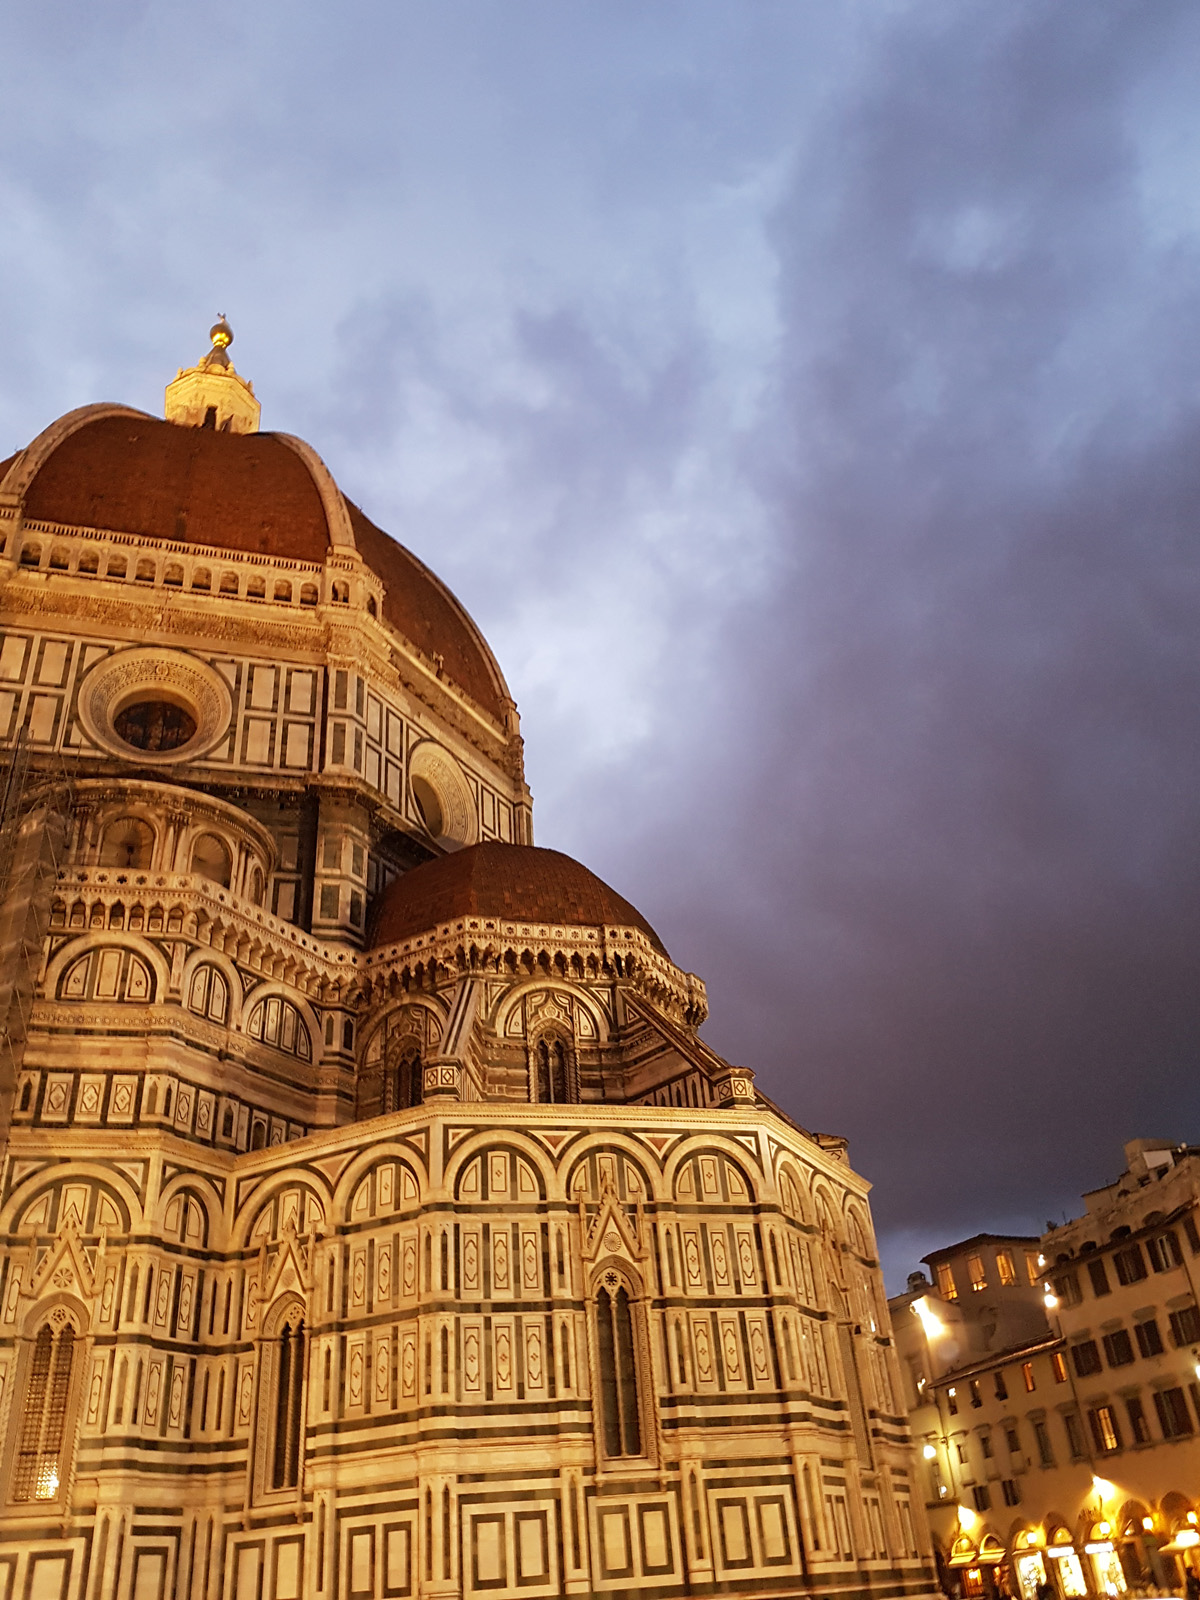 The Duomo (Florence Cathedral | Cattedrale di Santa Maria del Fiore) and Baptistery of Saint John (Florence Baptistery)